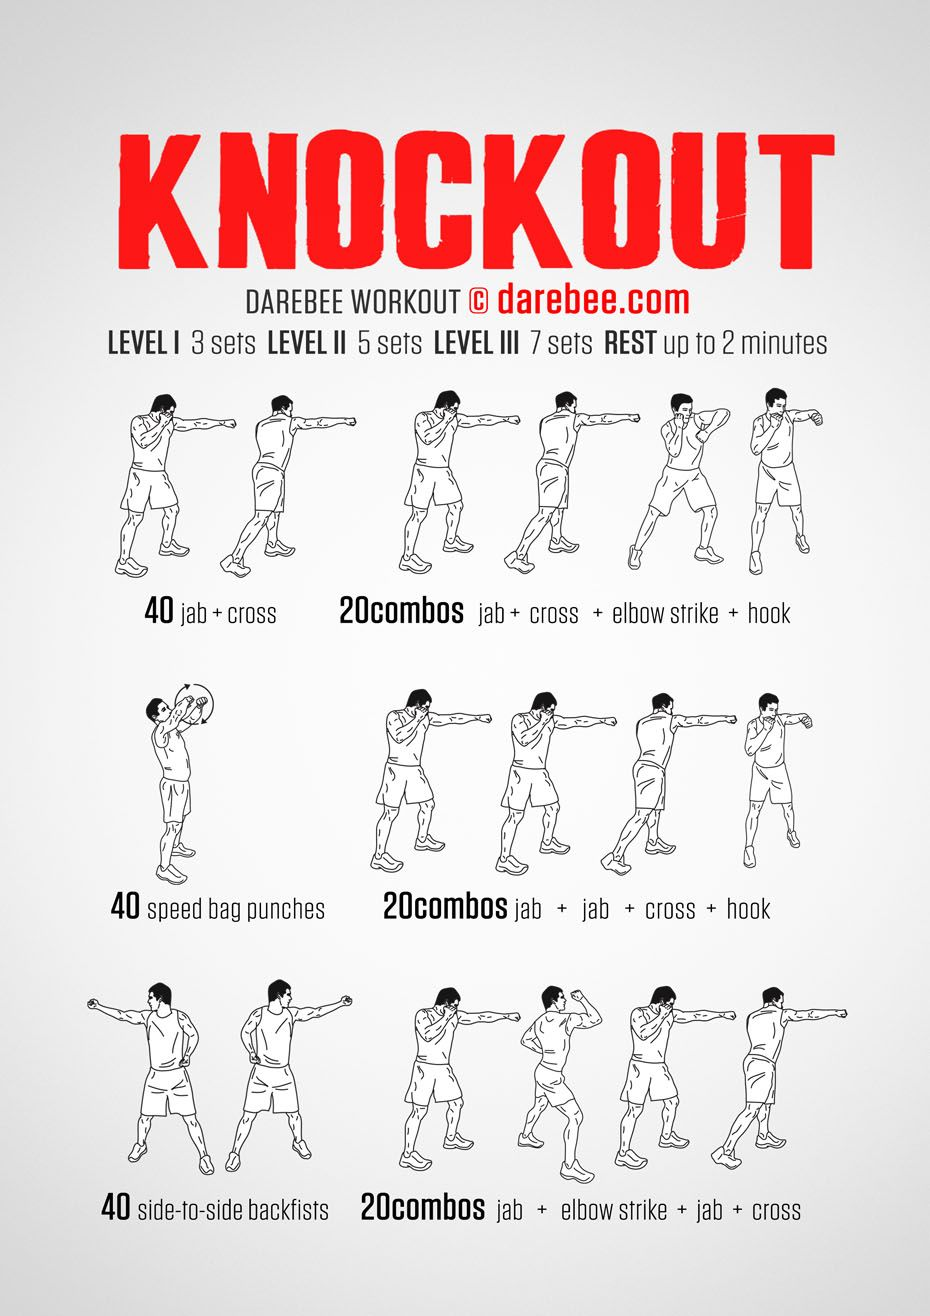 Knockout Workout | Exercise | Pinterest | Workout, Boxing ...